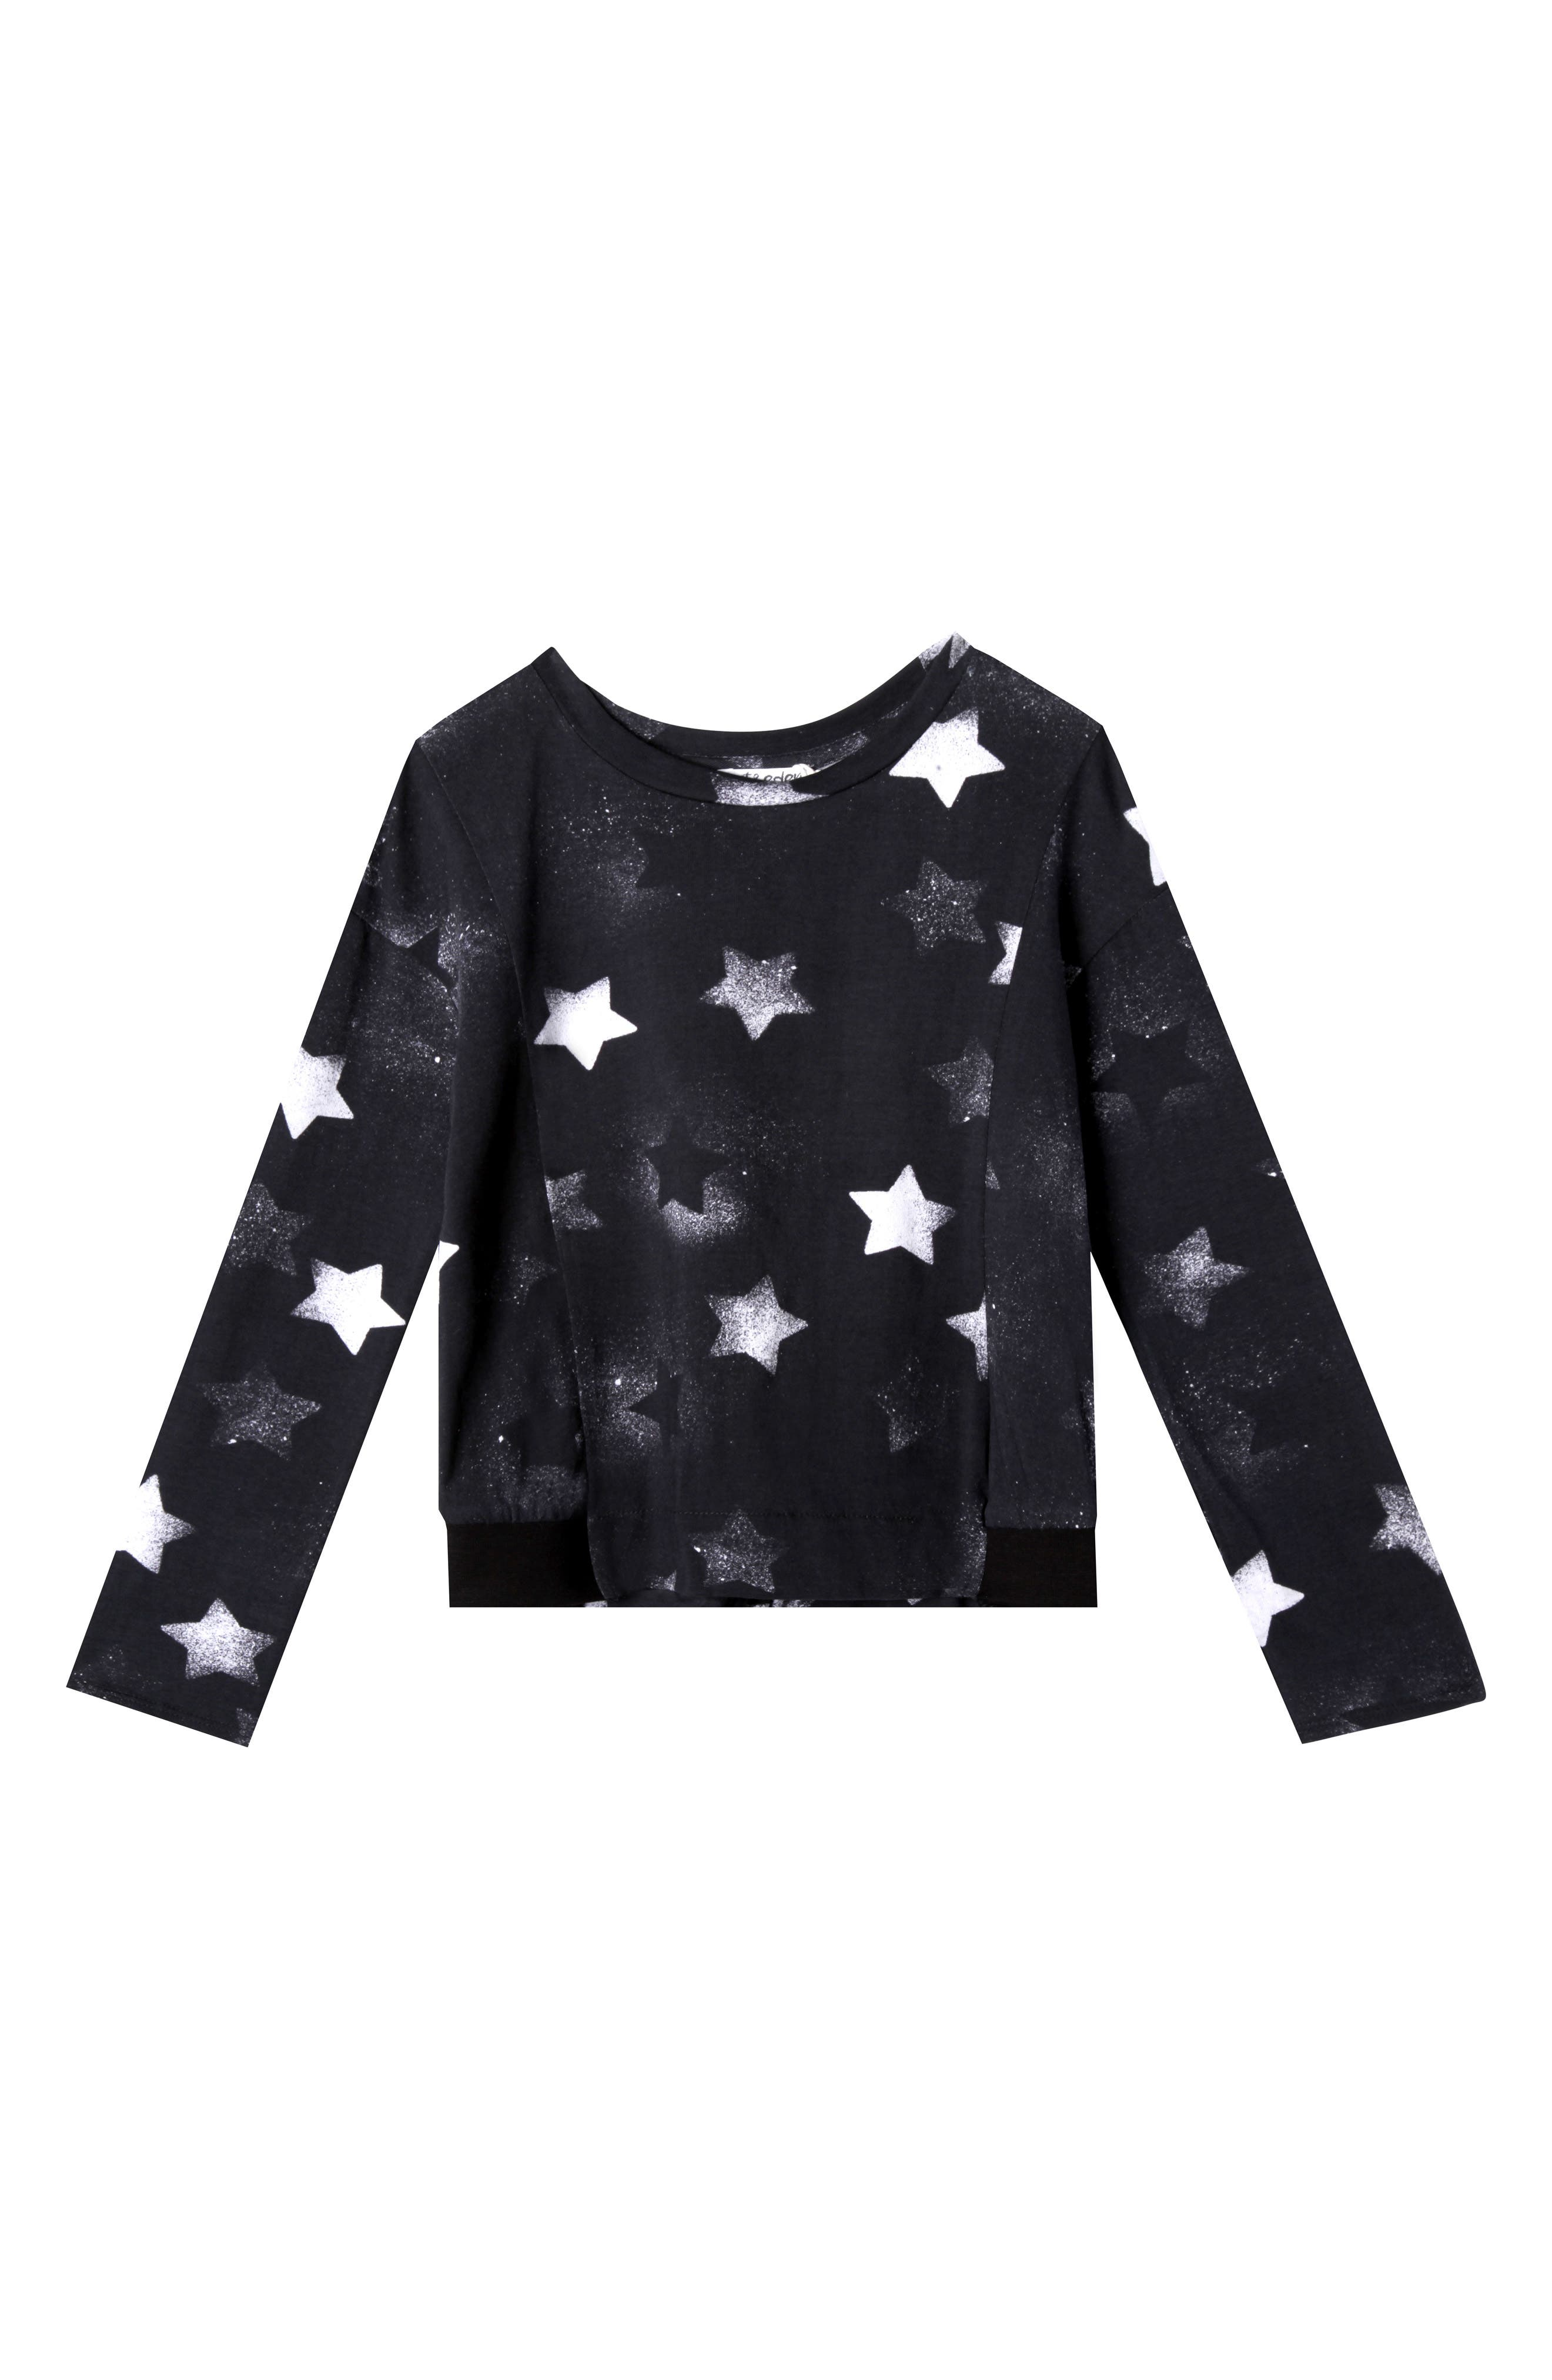 Main Image - Art & Eden Eva Star Print Tee (Toddler Girls & Little Girls)